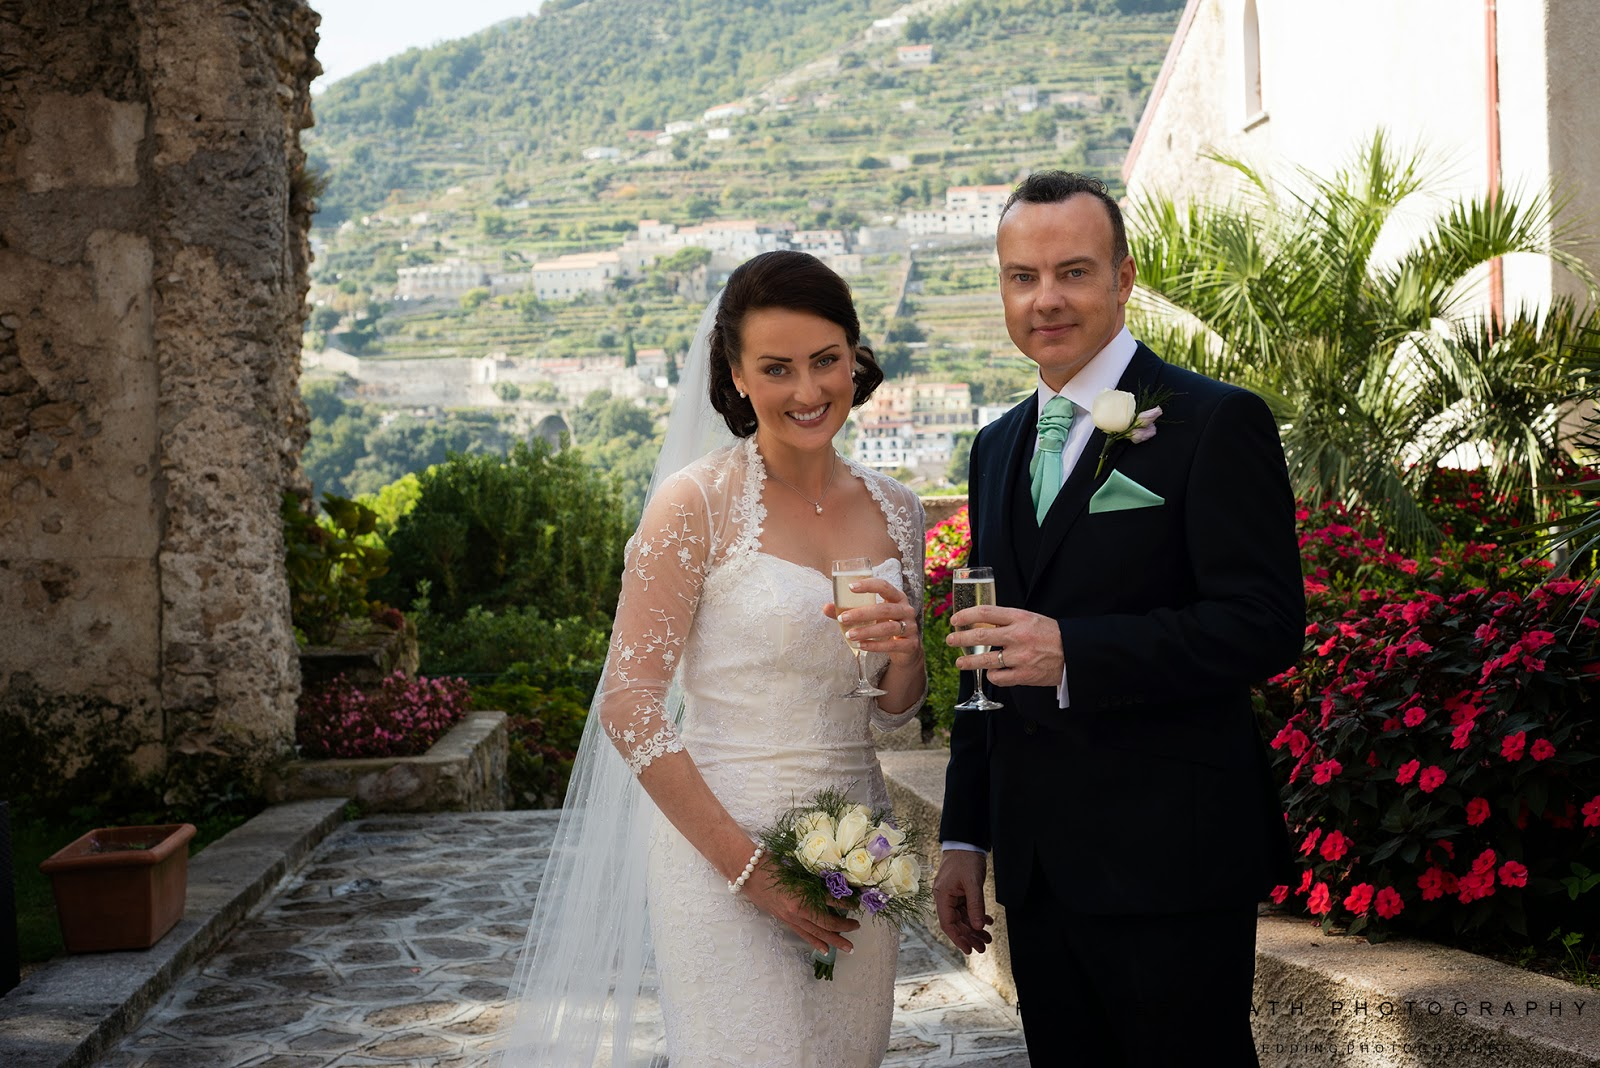 Wedding in Ravello Italy